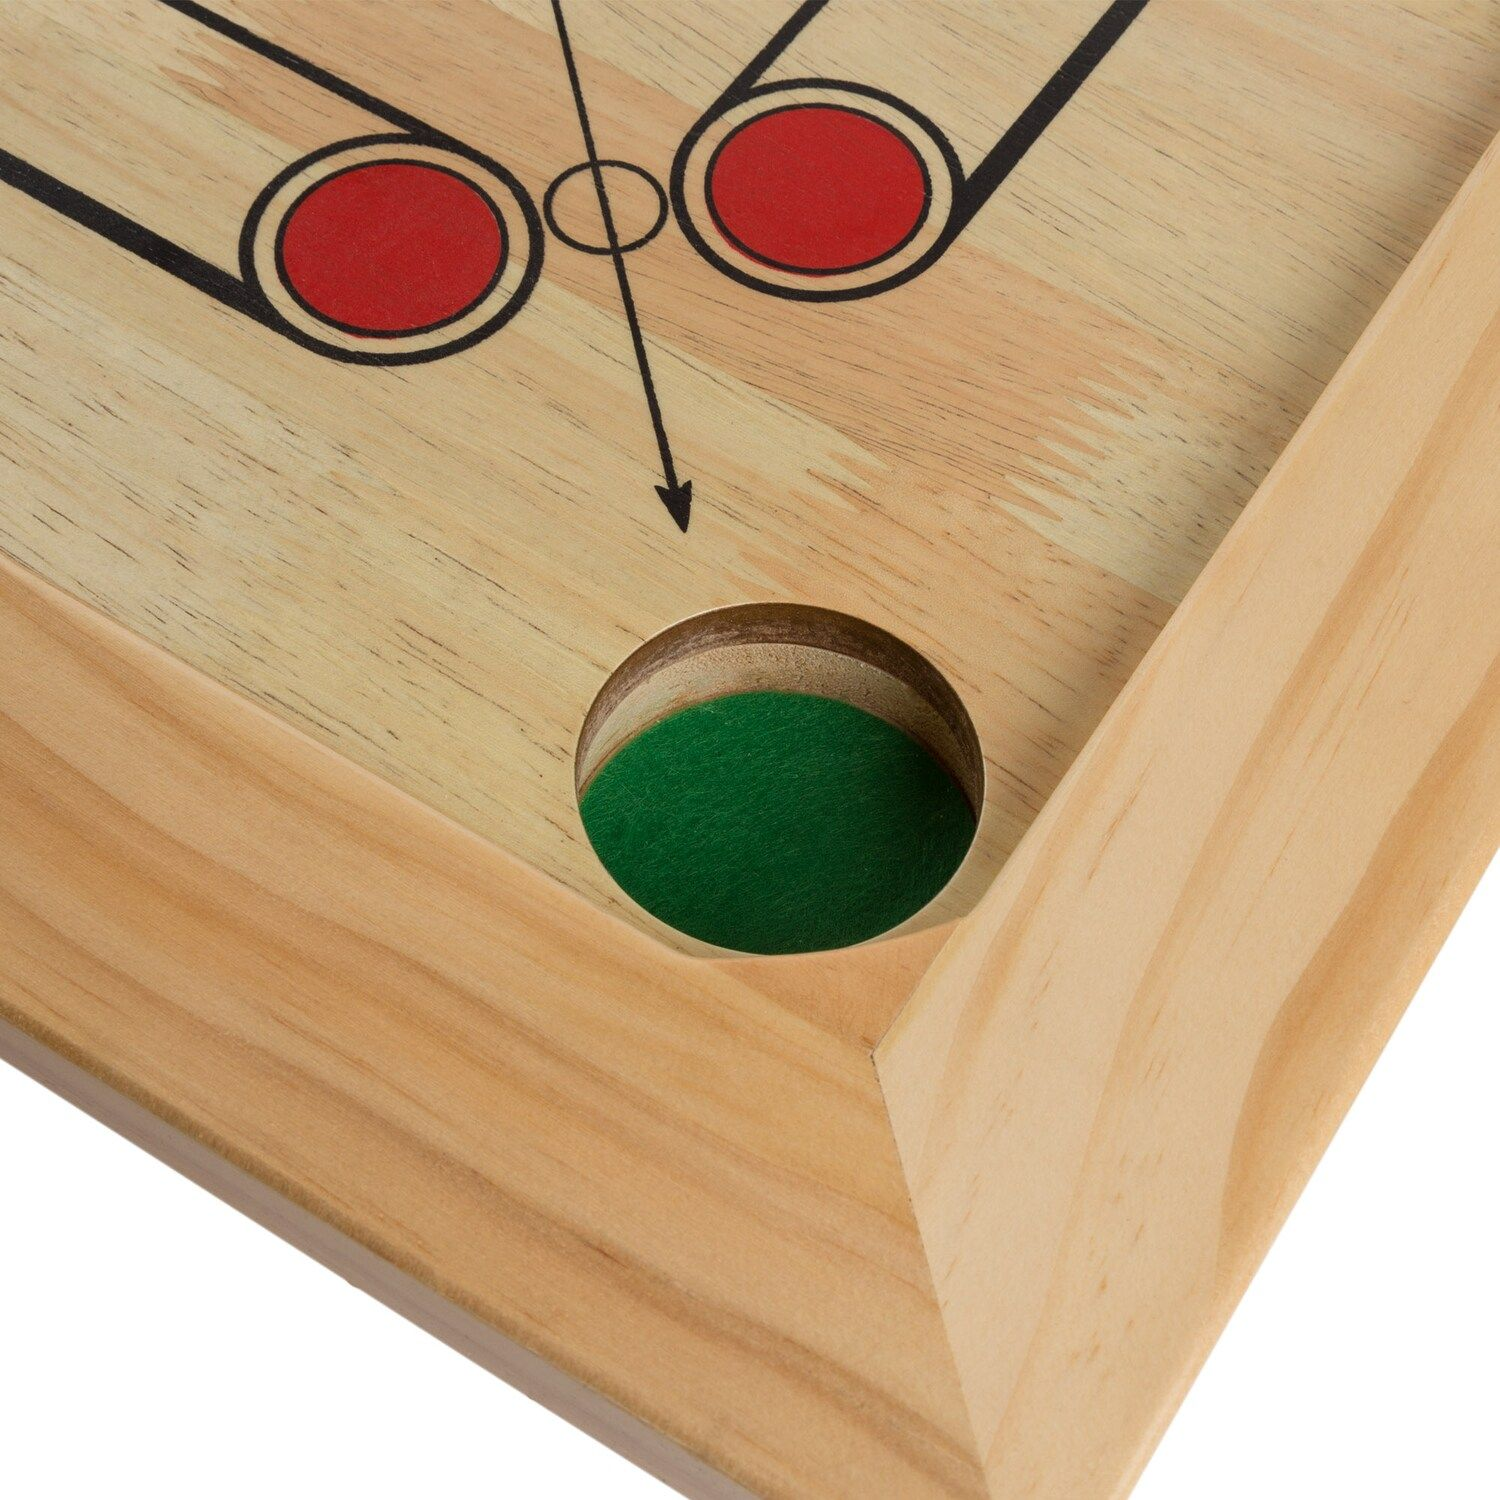 Hey Play Carrom Board Game Classic Strike And Pocket Table Game Carrom Board Game Carrom Board Puzzle Games For Kids